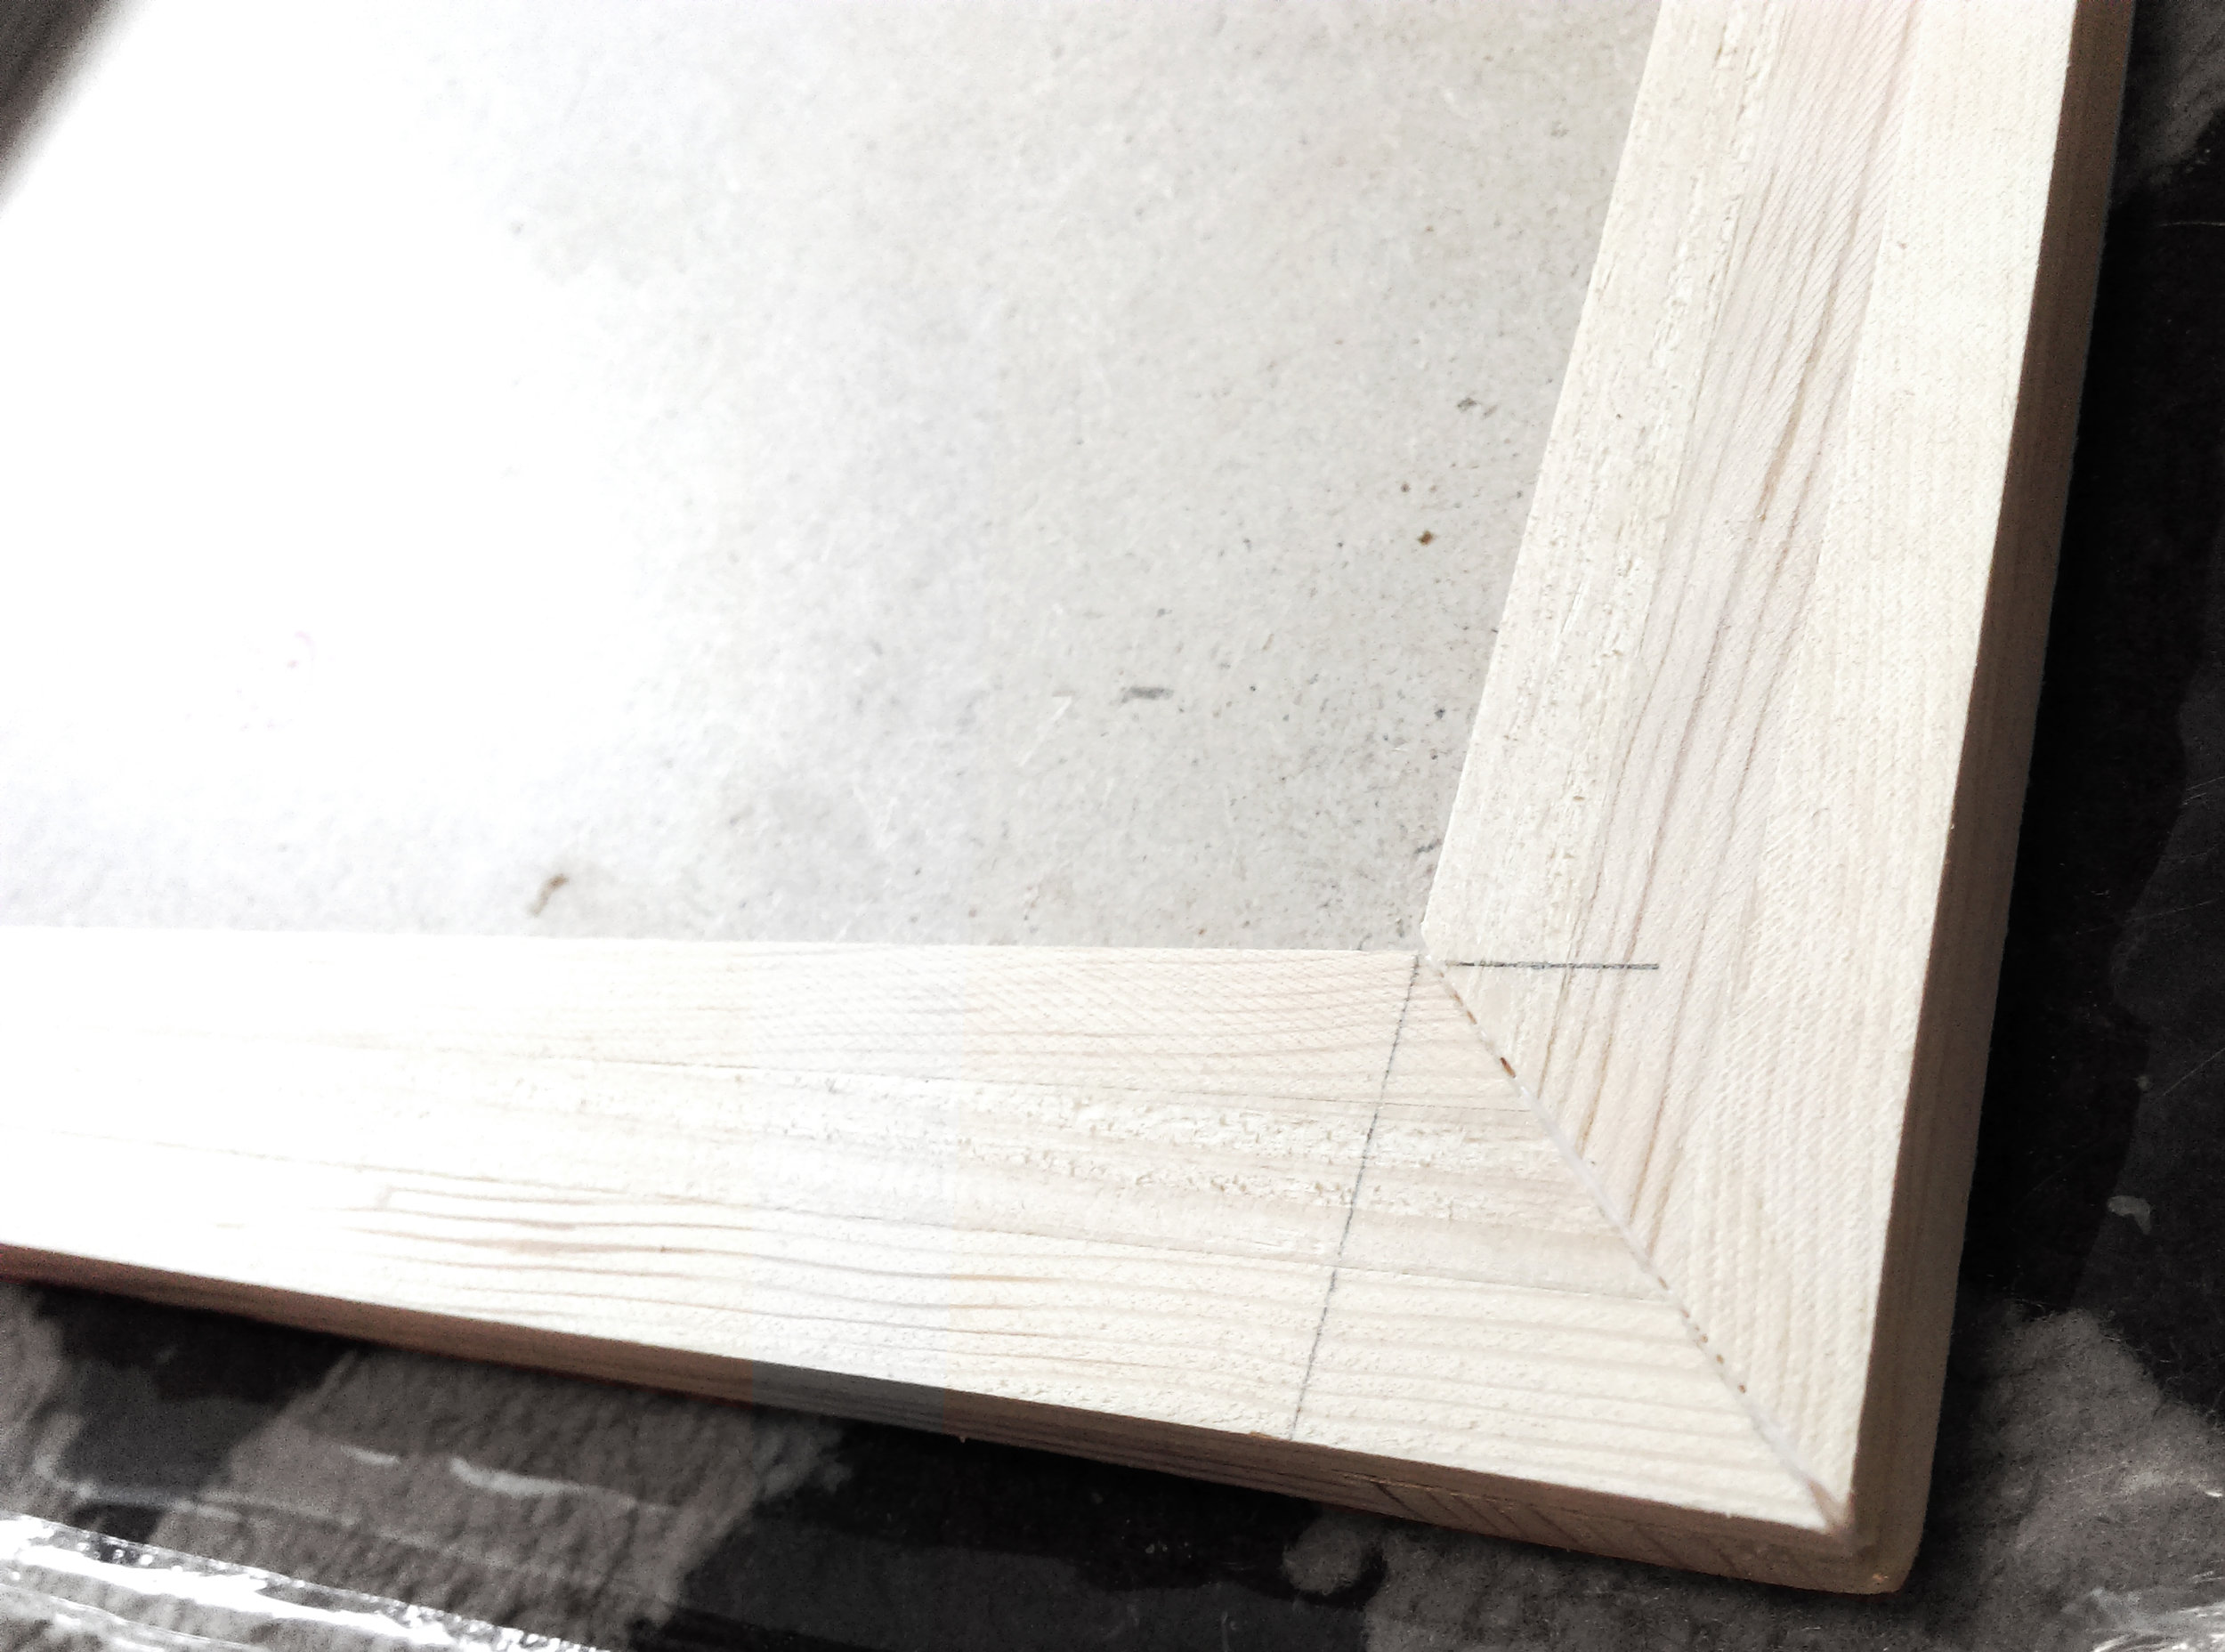 One of the corners, after lots of sanding for precise fitment.